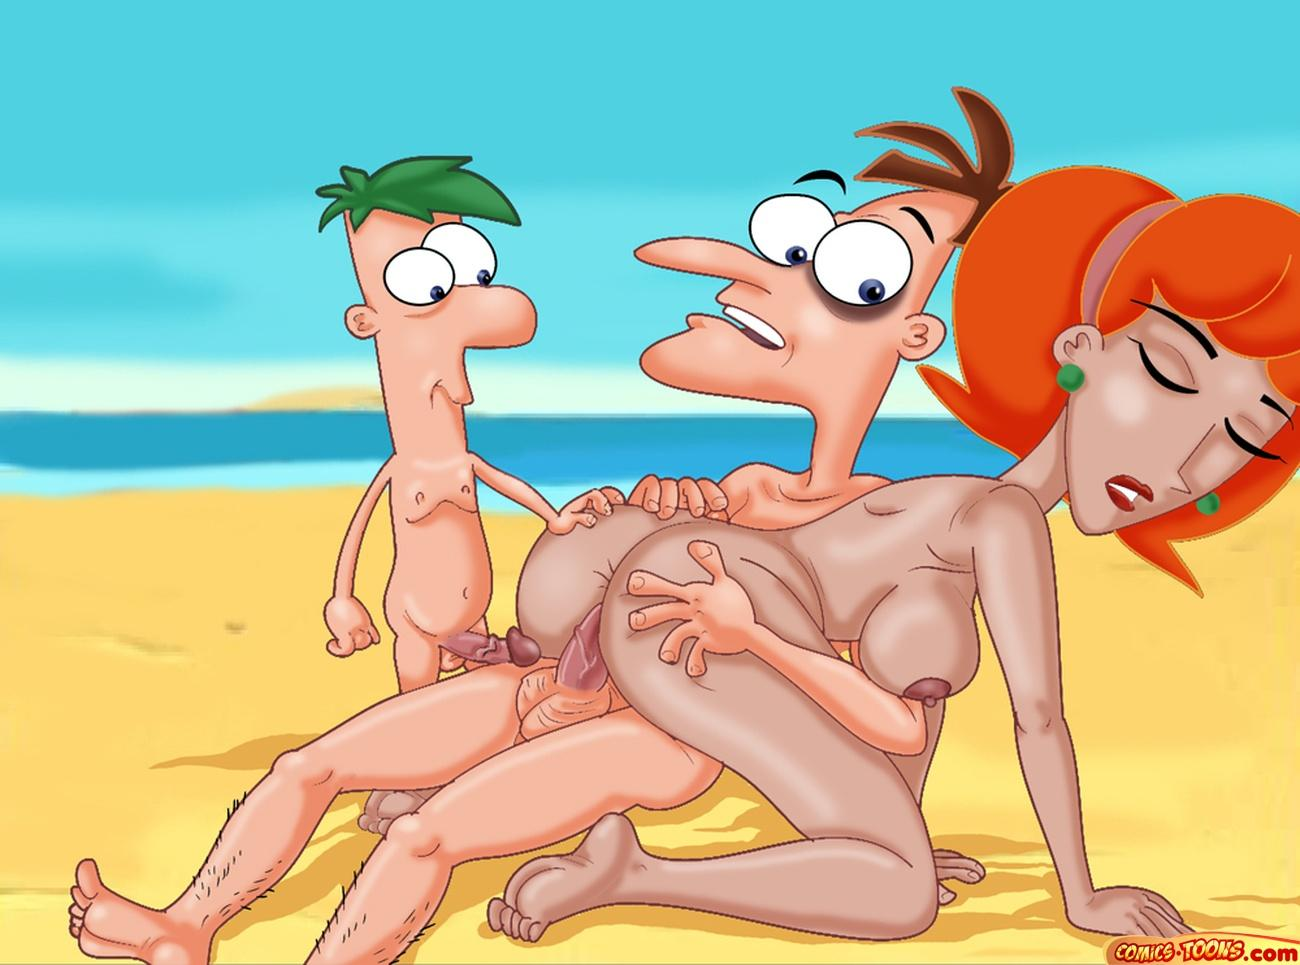 phineas nude and ferb linda He's finally here performing for you